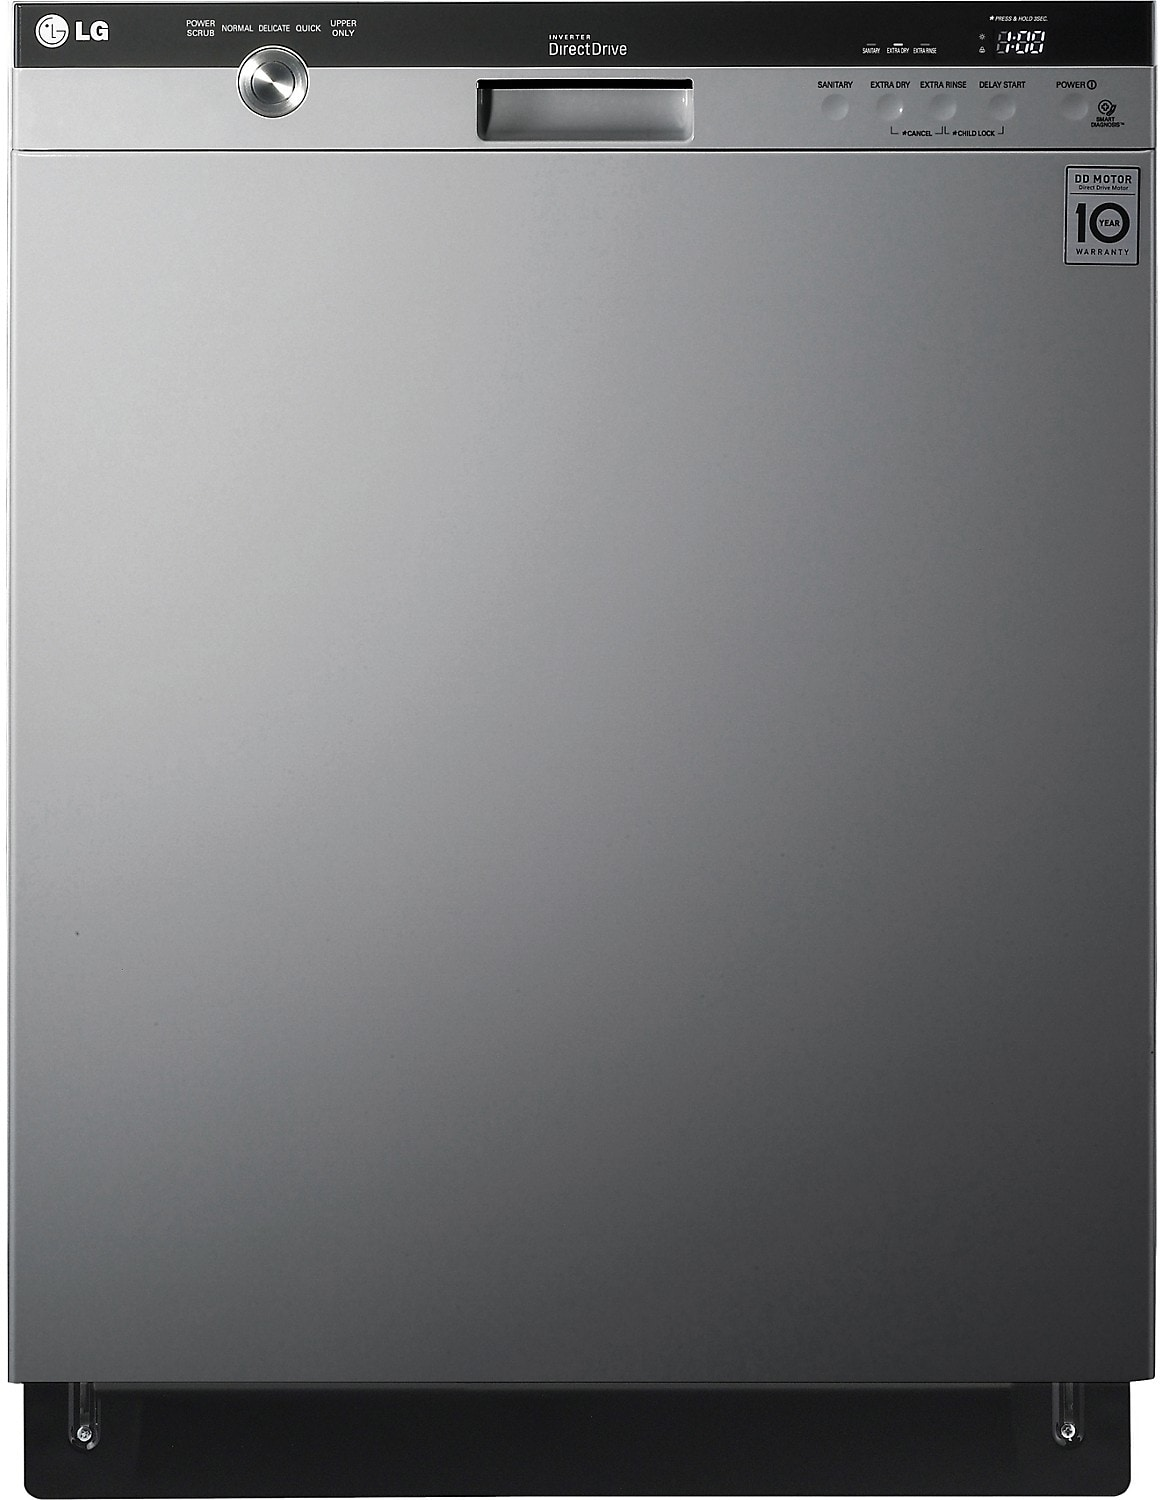 "Clean-Up - LG 24"" Semi-Integrated Dishwasher with EasyRack™ Plus System - Stainless Steel"